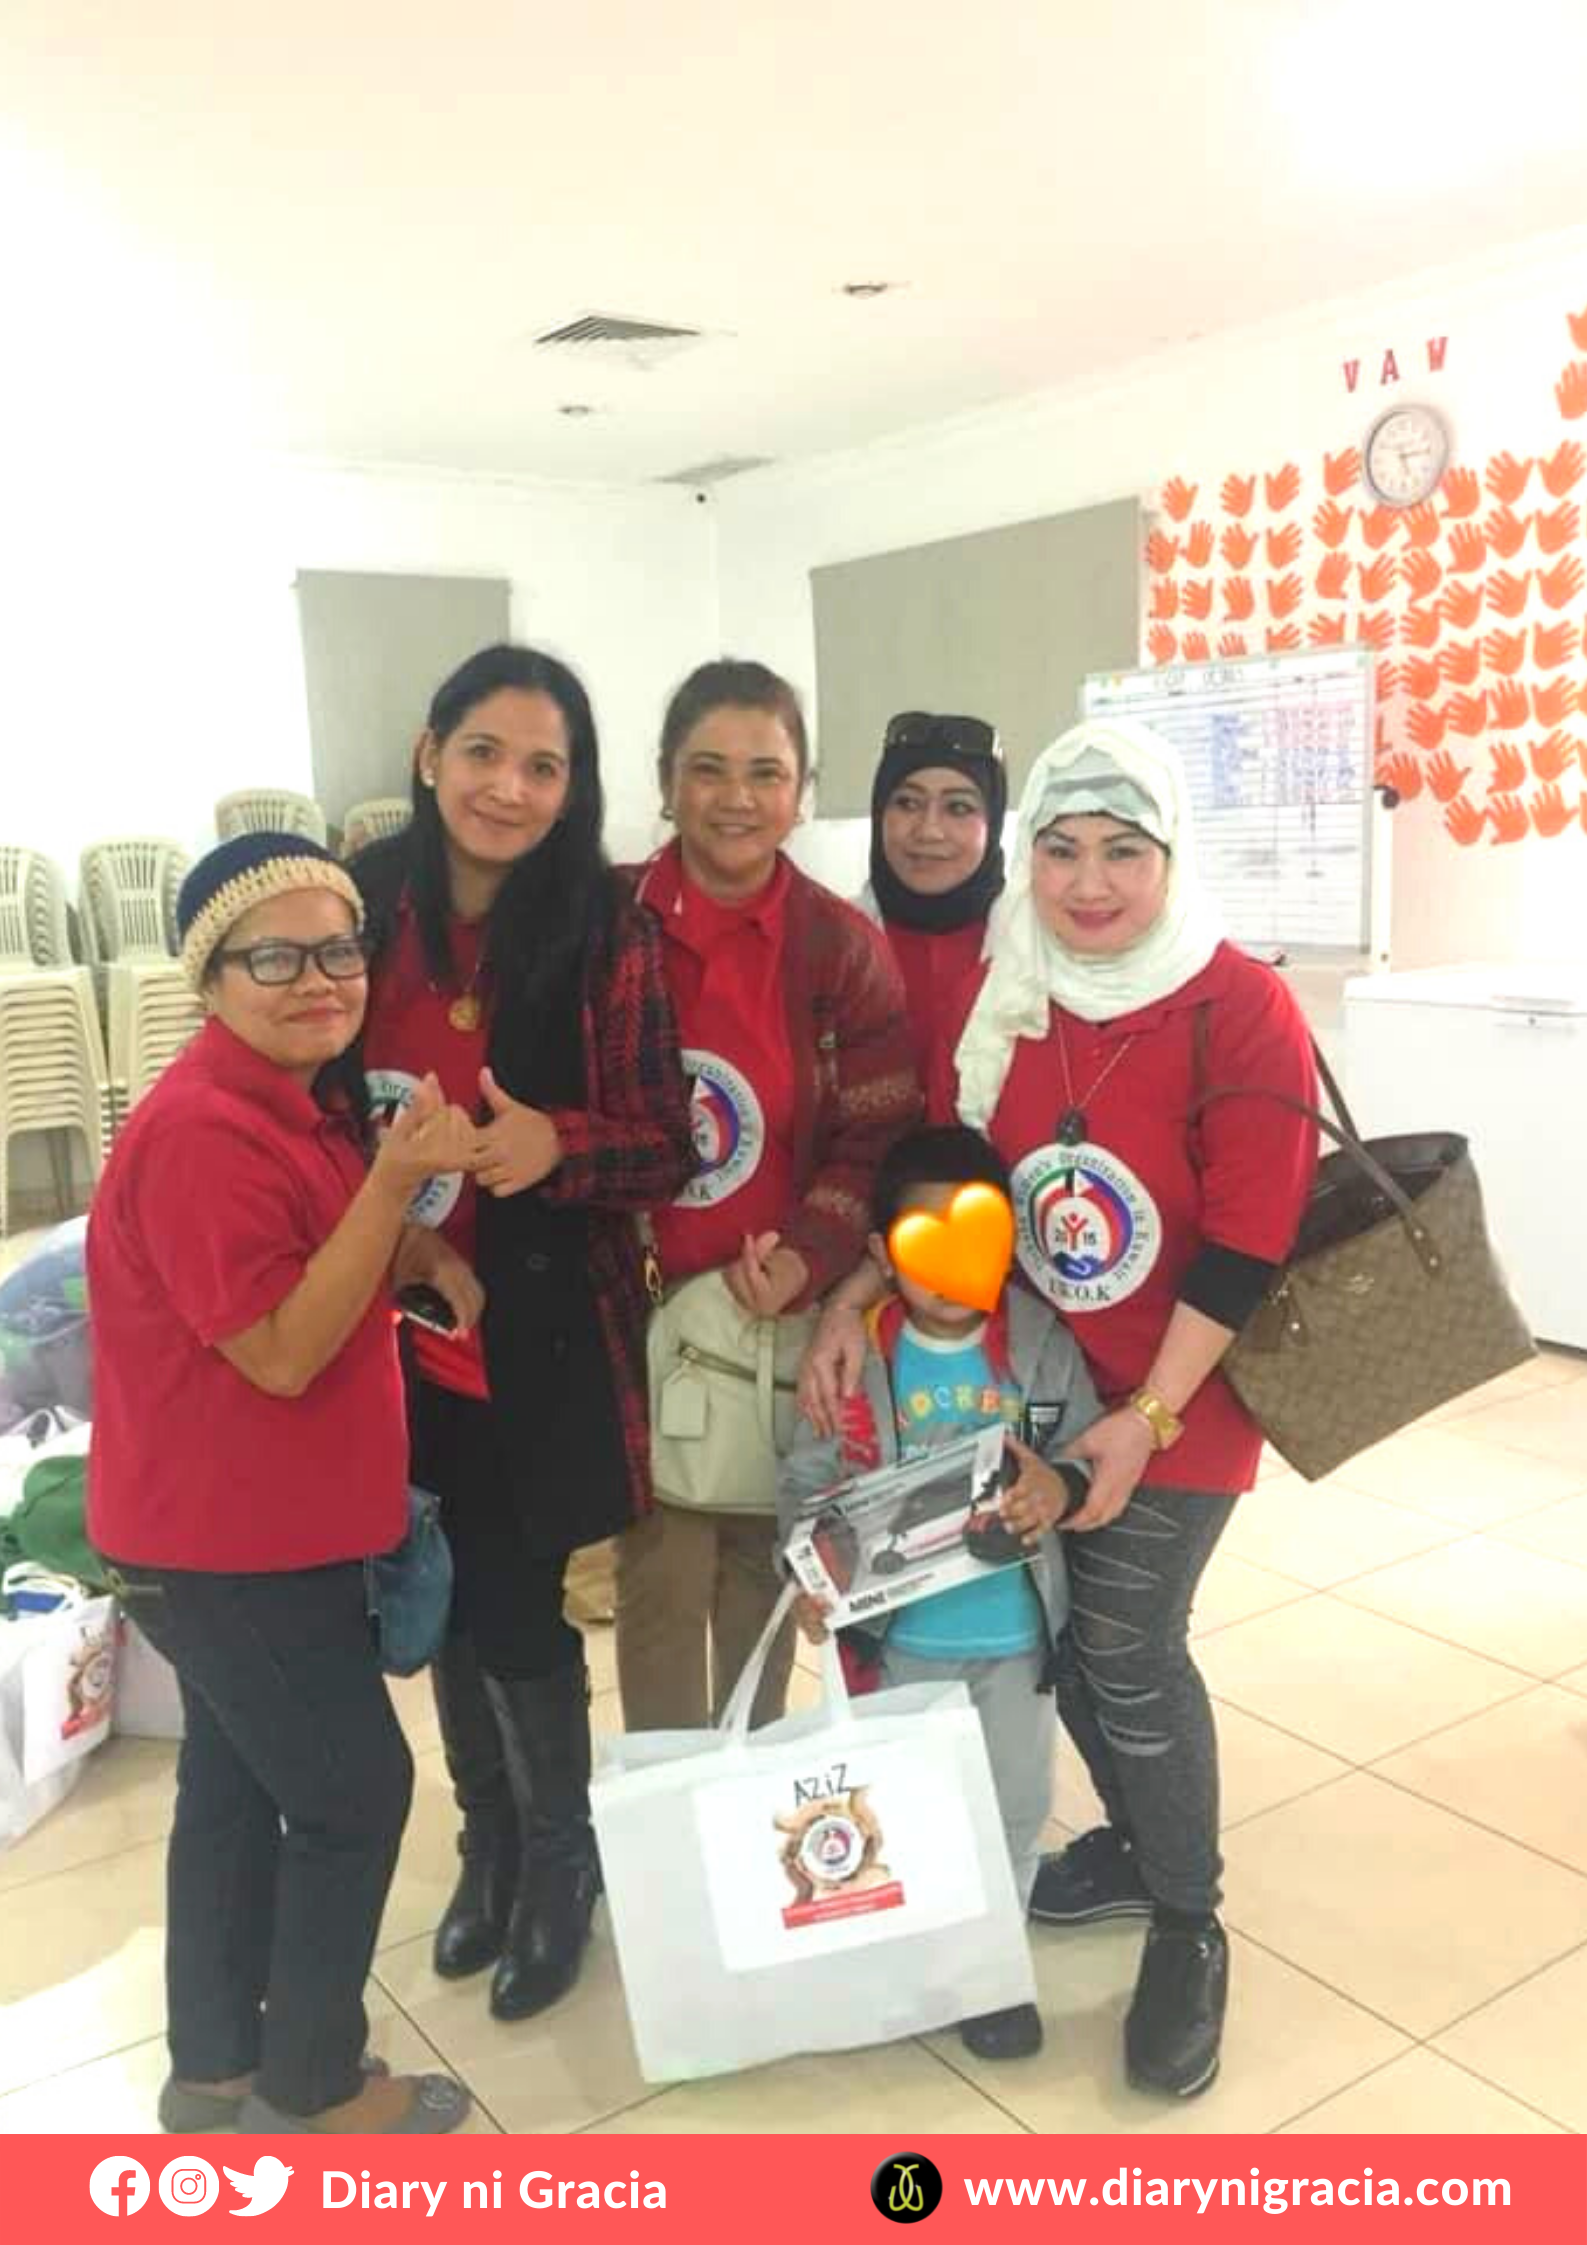 Aziz with IWOK Team, receiving the gift